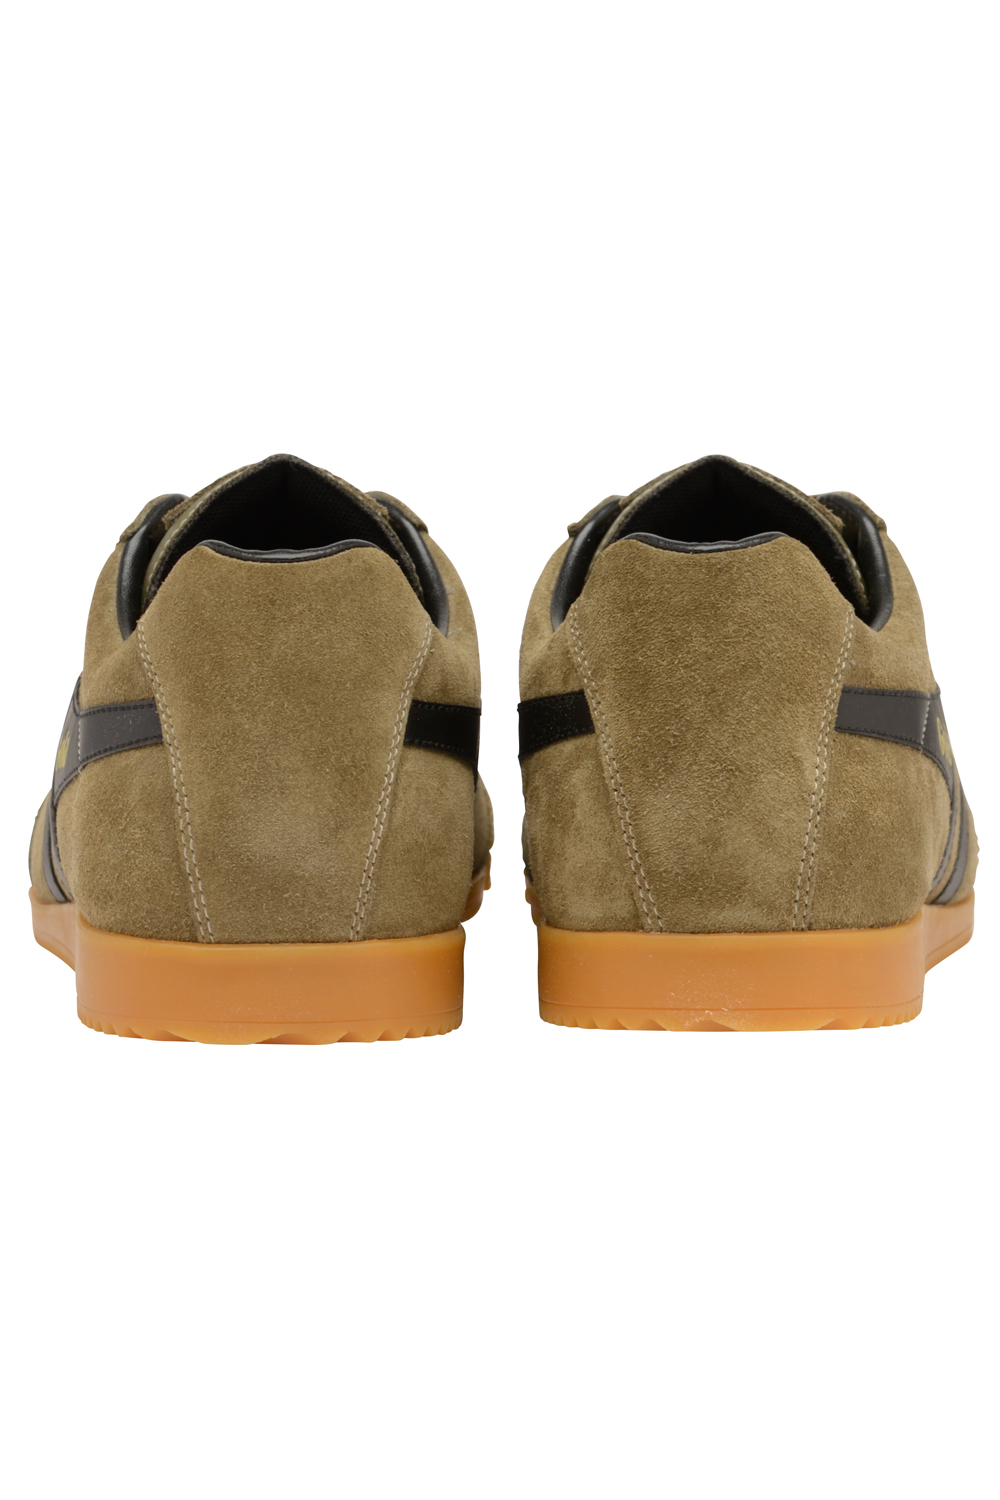 Gola-Harrier-Suede-Classic-Vintage-Lace-Up-Sneakers-Mens-Trainers-Low-Top-Shoes thumbnail 10